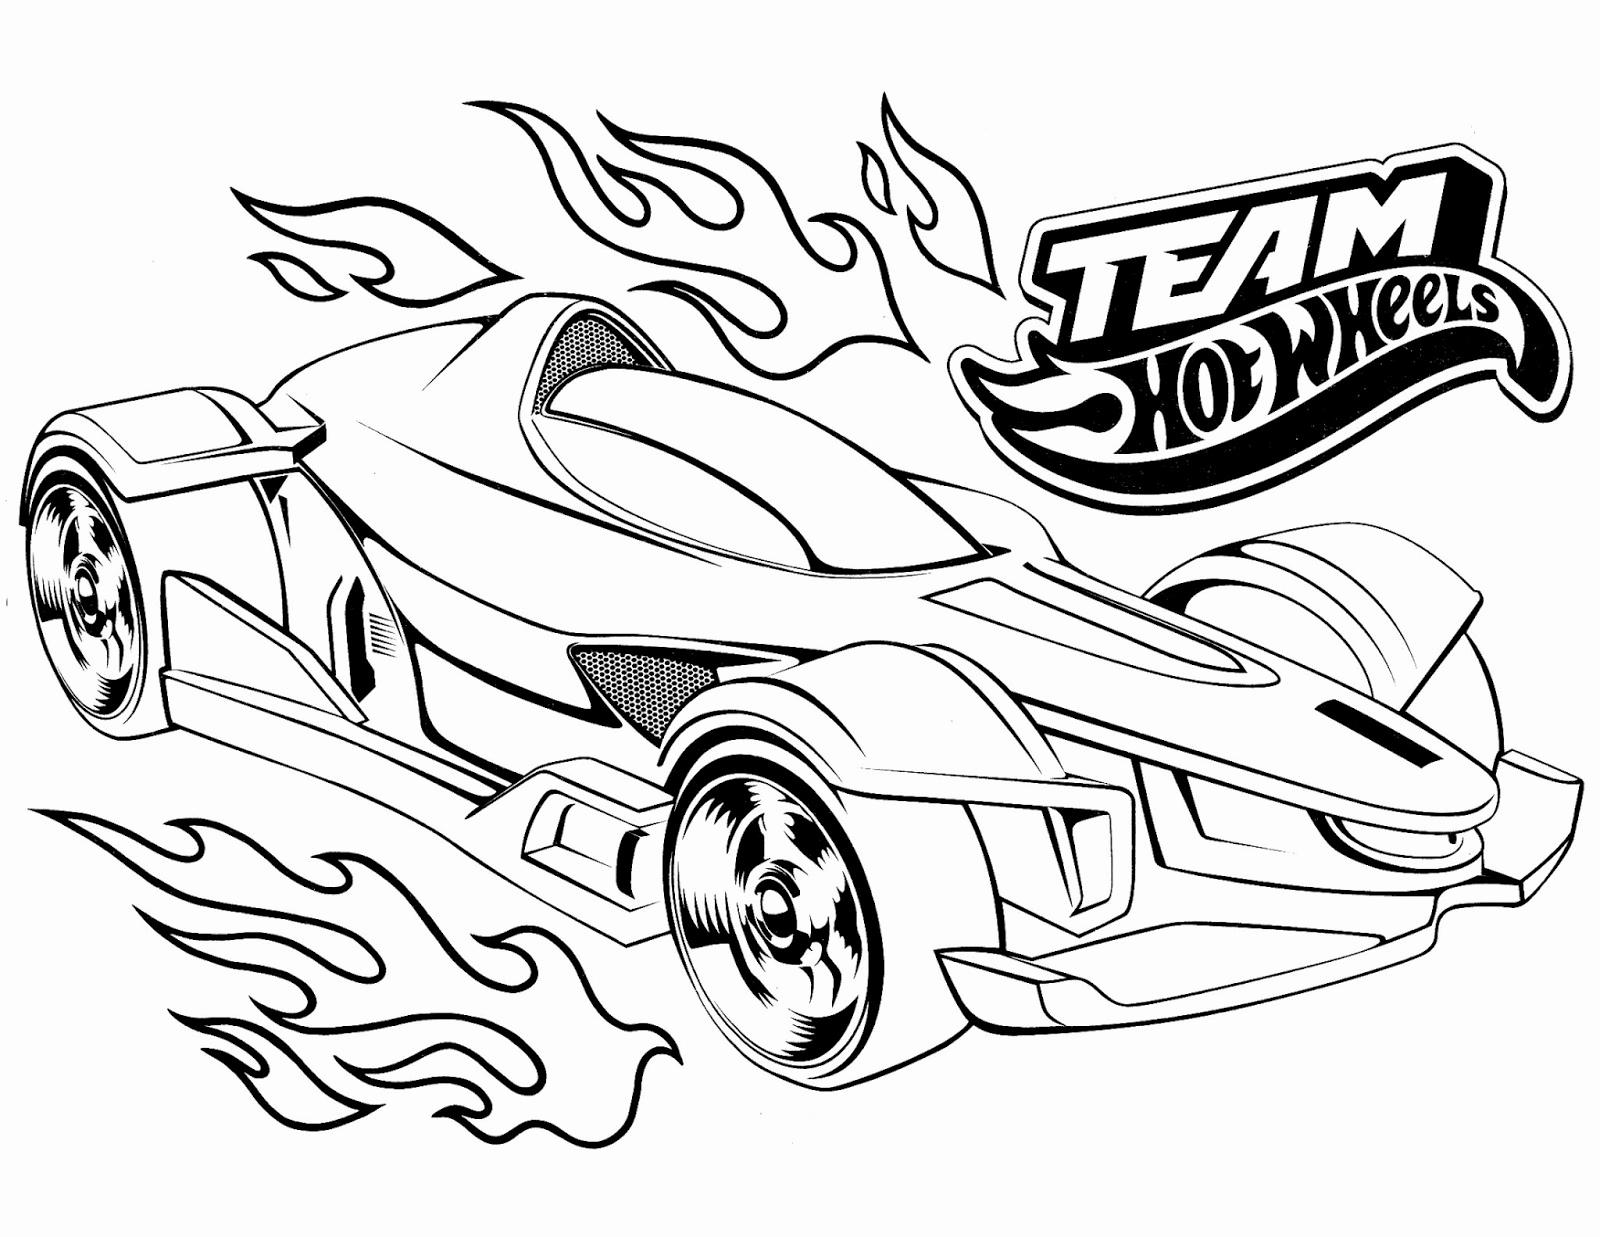 1600x1237 Car Coloring Pages For Adults Inspirational Hot Wheels Team